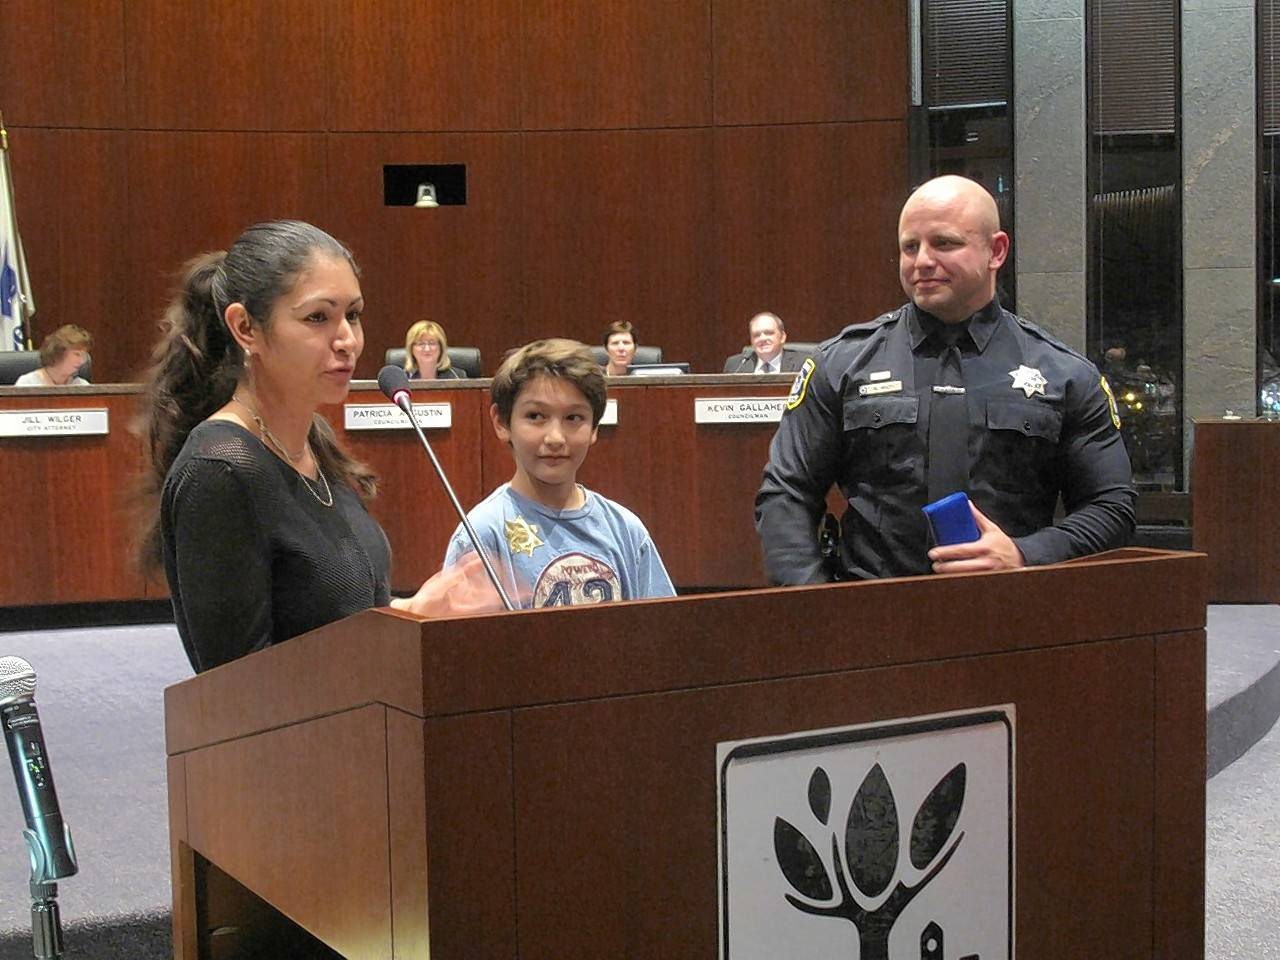 Naperville officer praised for lifesaving hustle